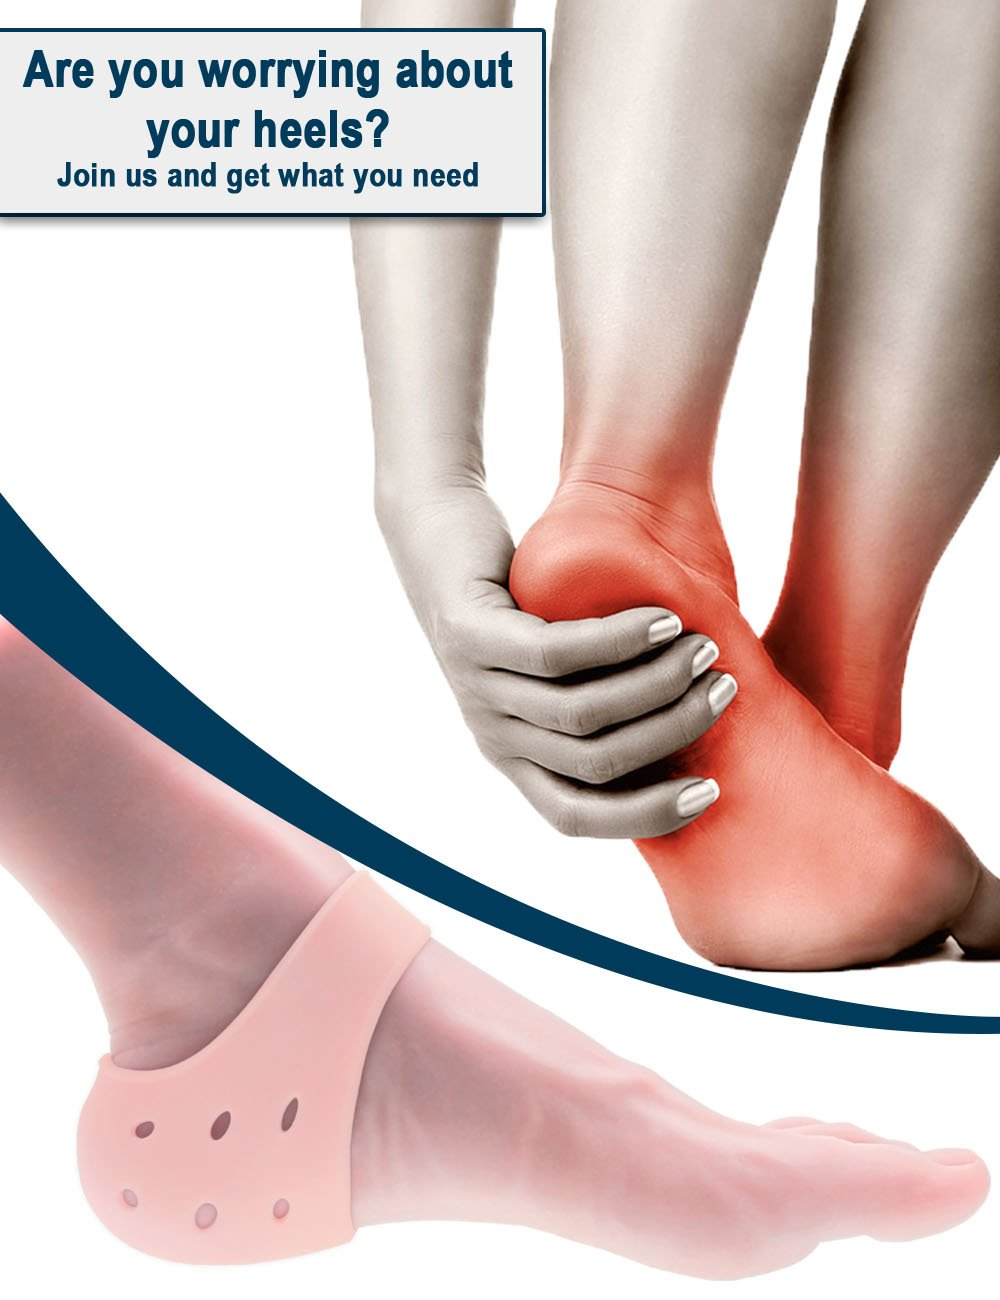 Heel Protectors, Moisturizing Gel Heel Cushions for Dry, Cracked feet by Toe Glow-2Pieces by Toe Glow (Image #3)